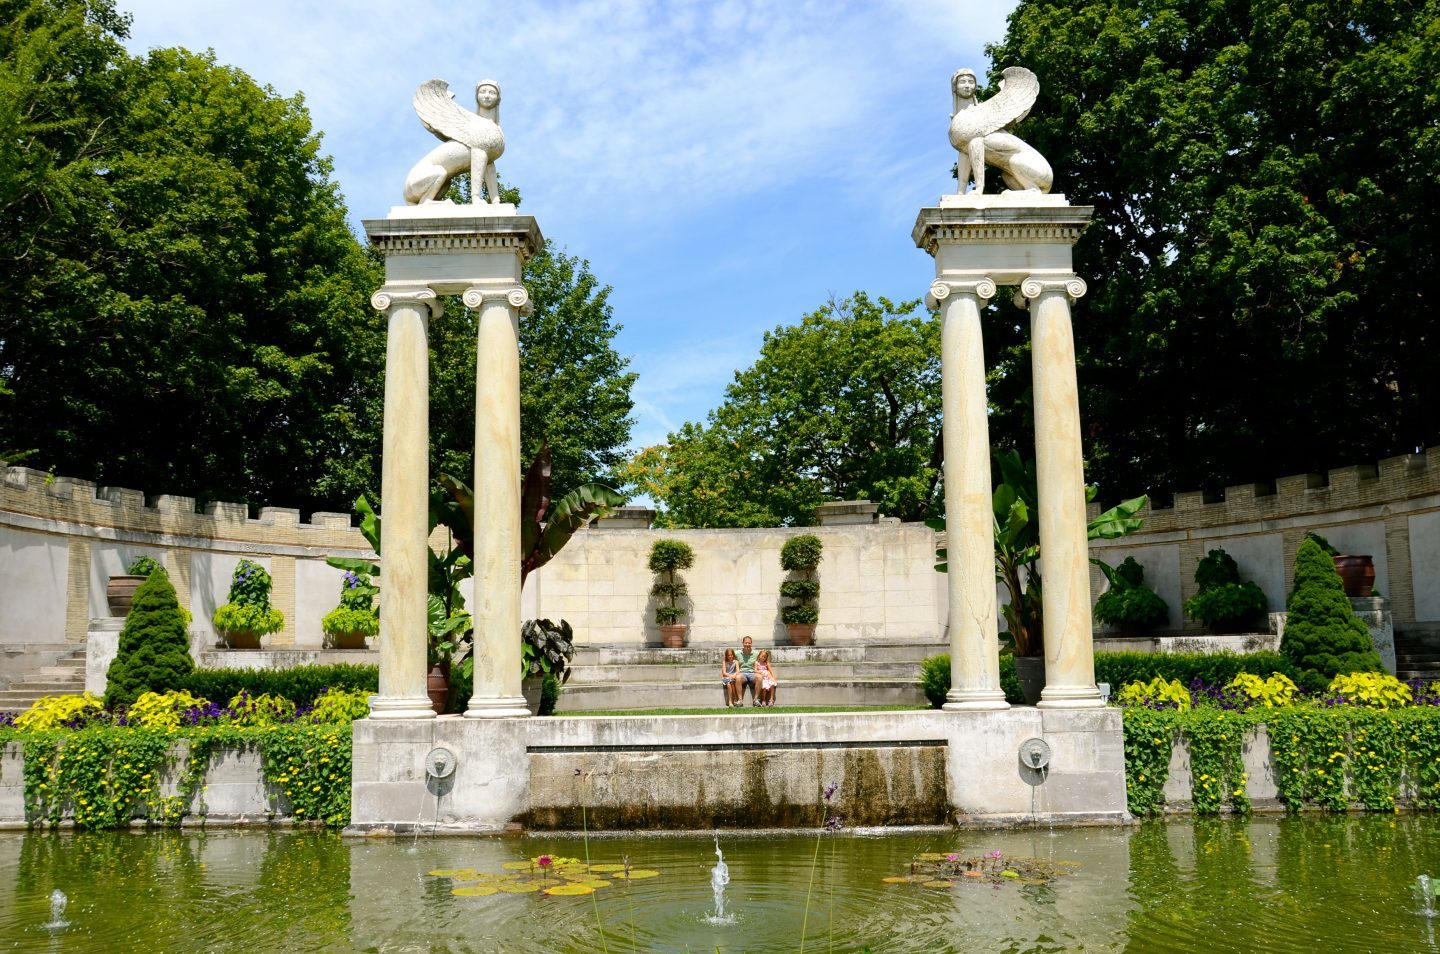 Taking a break at the exquisite Untermyer Park and Gardens.